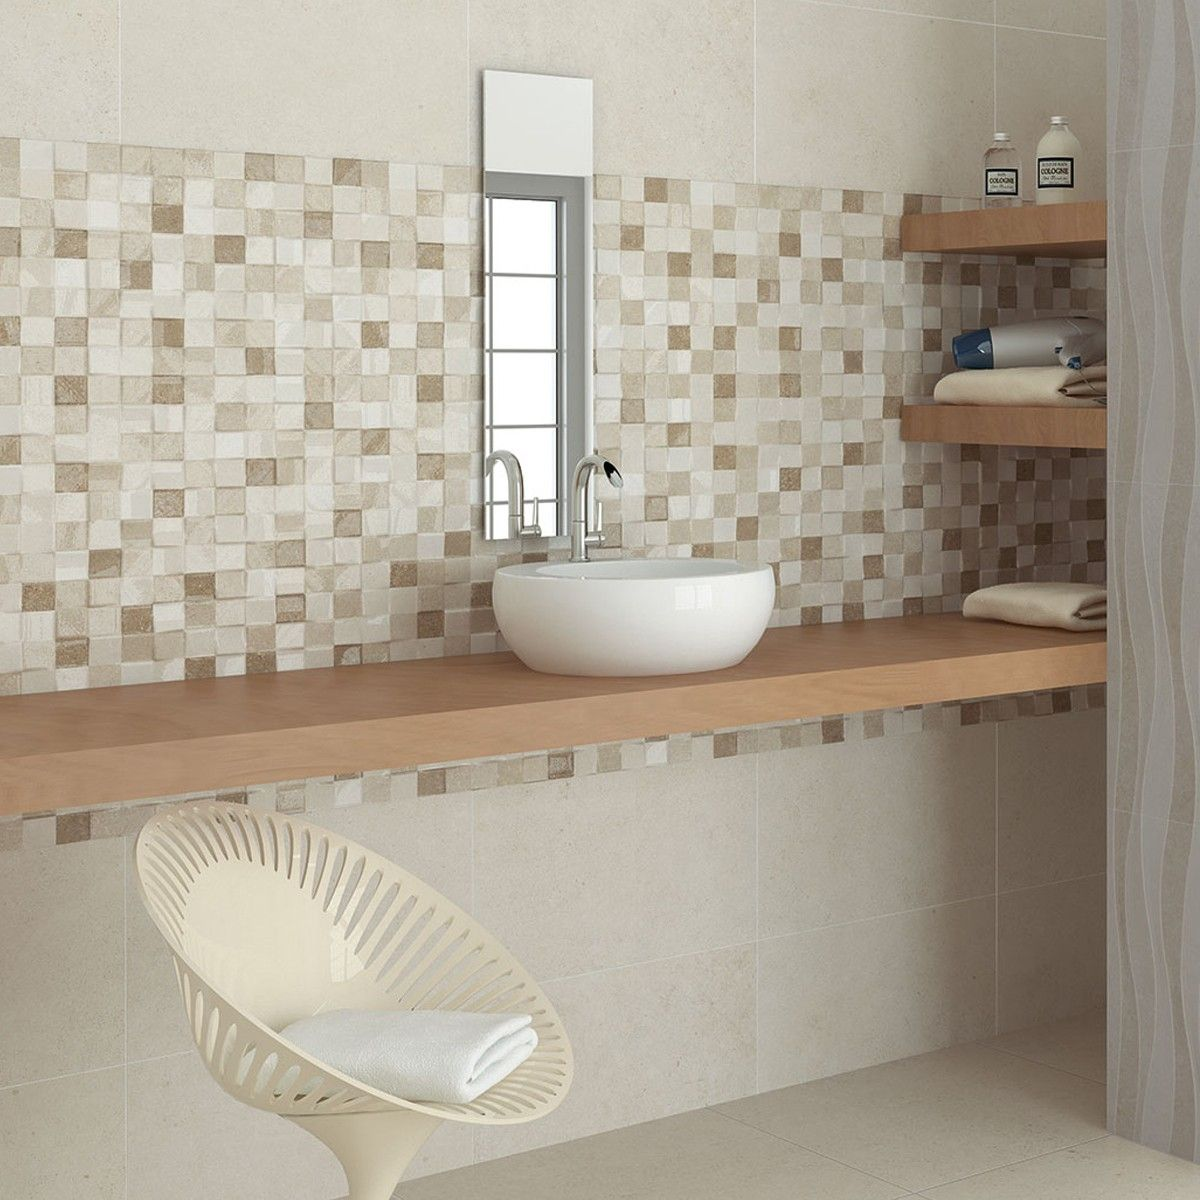 Kitchen Tiles Adelaide 55x33.3 adelaide beige mosaic - bathroom wall tiles - wall tiles